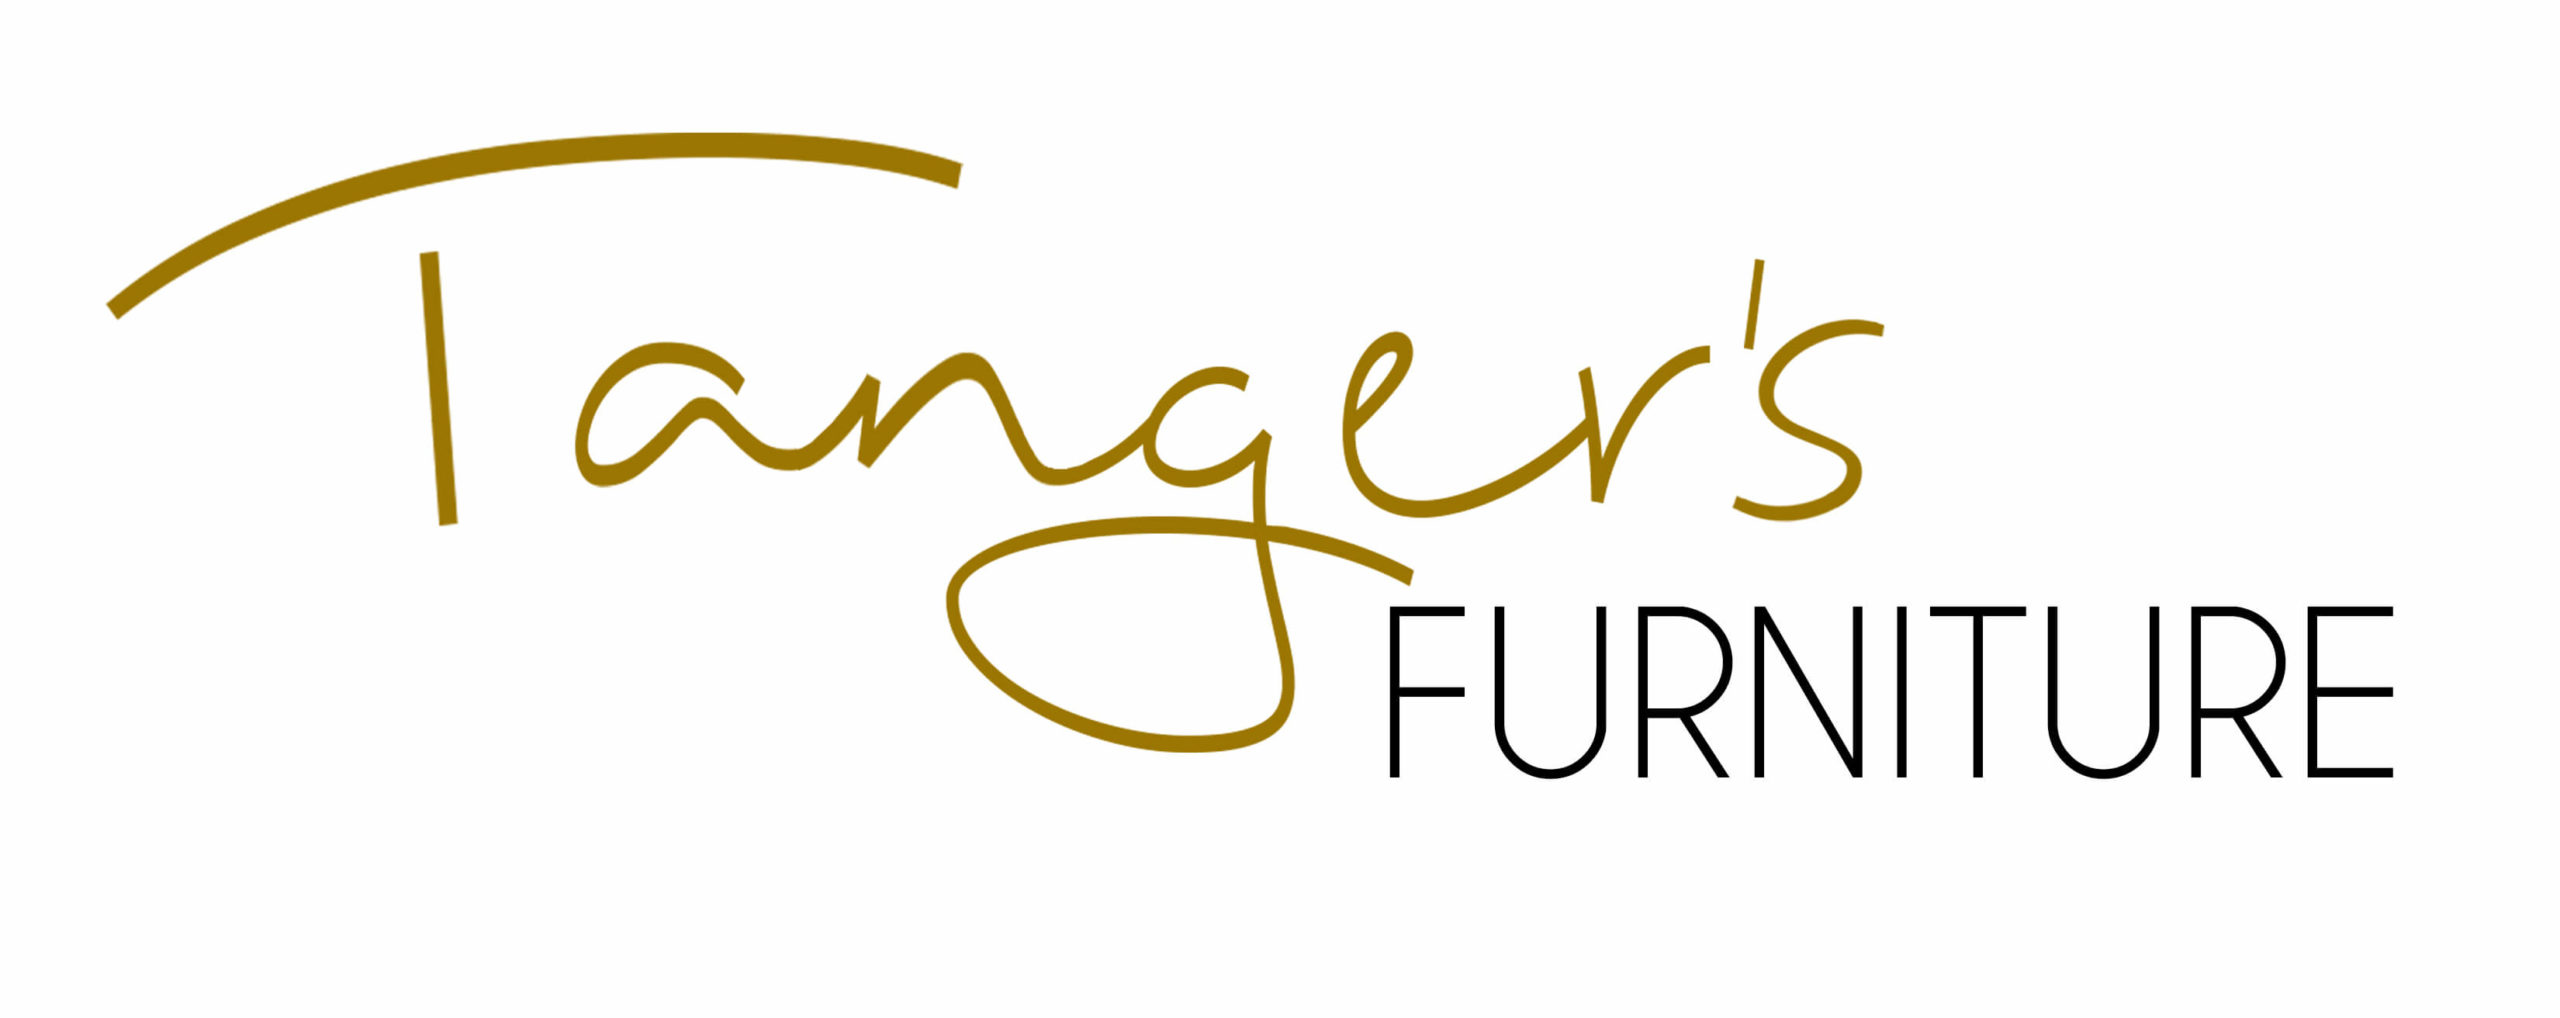 Tanger's Furniture - Bellefontaine, OH Furniture & Mattress Store